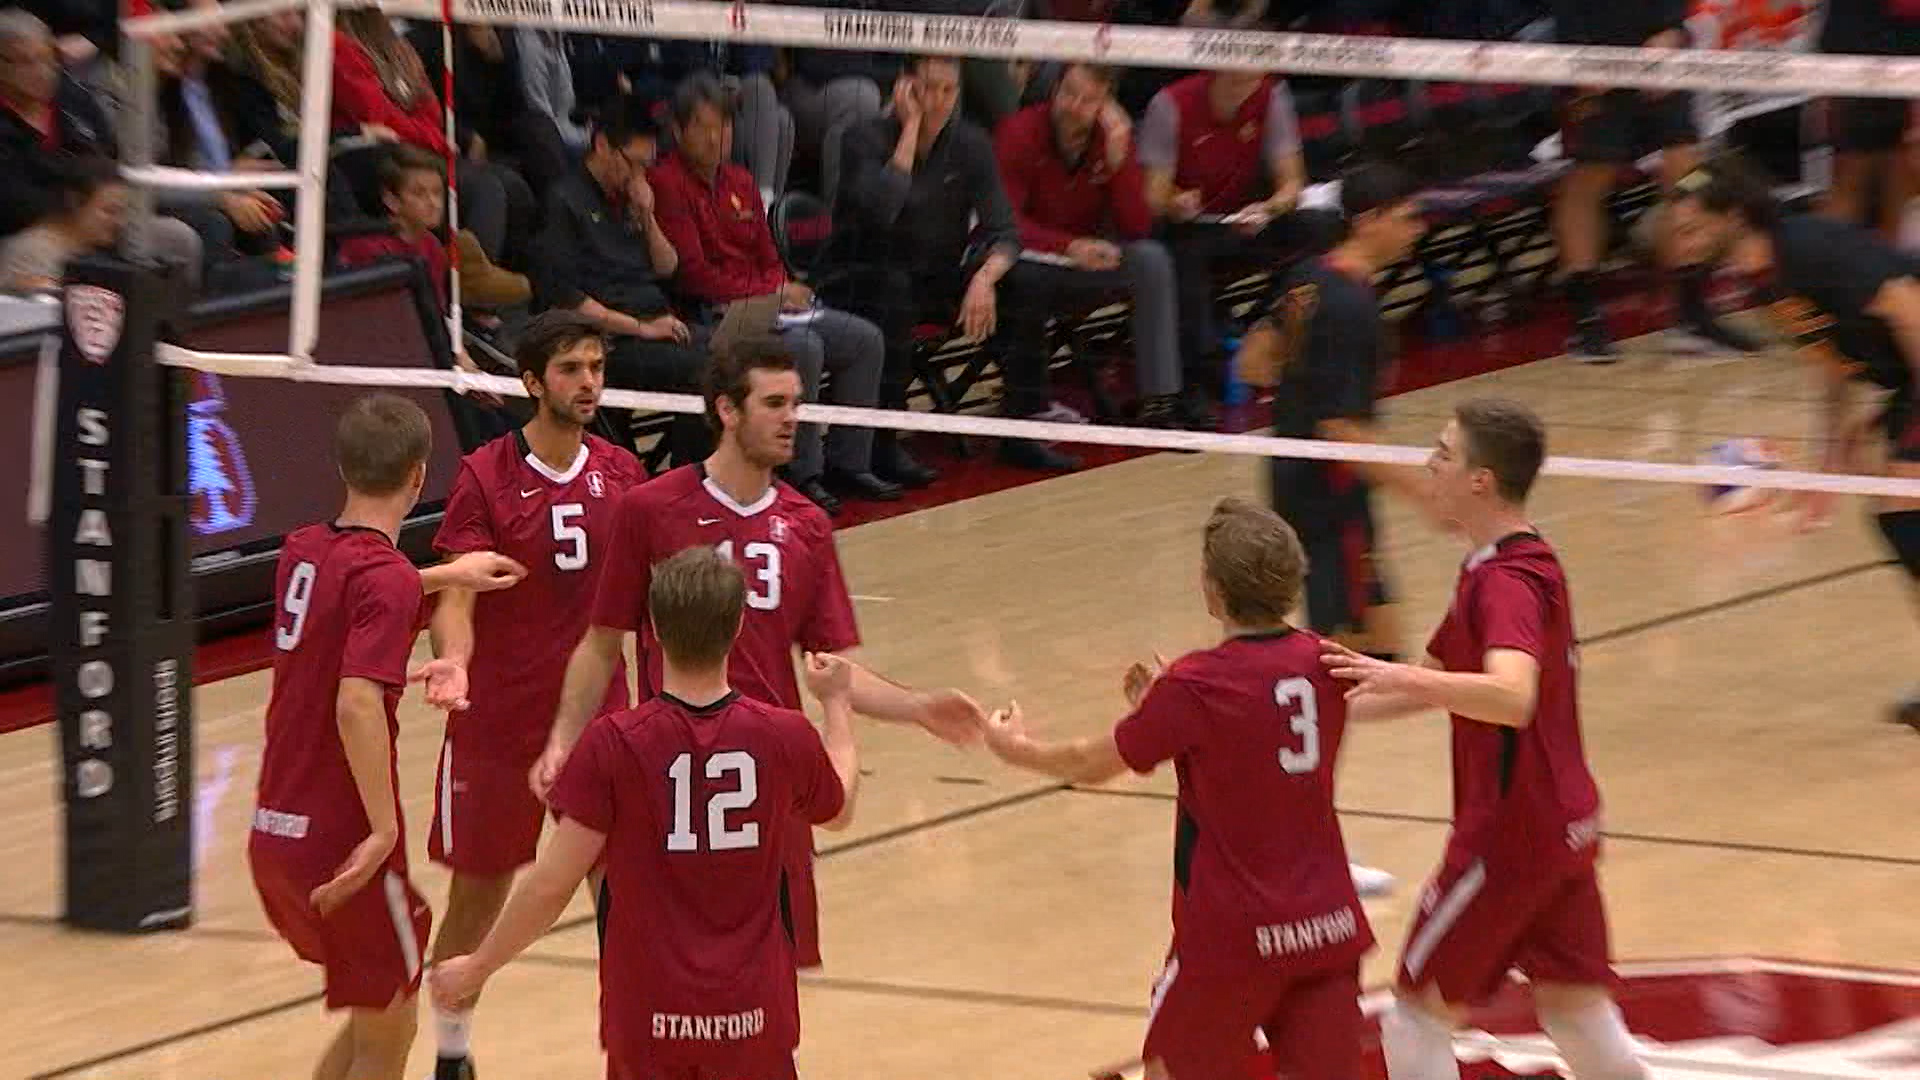 eek stanford mens volleyball - HD1920×1080